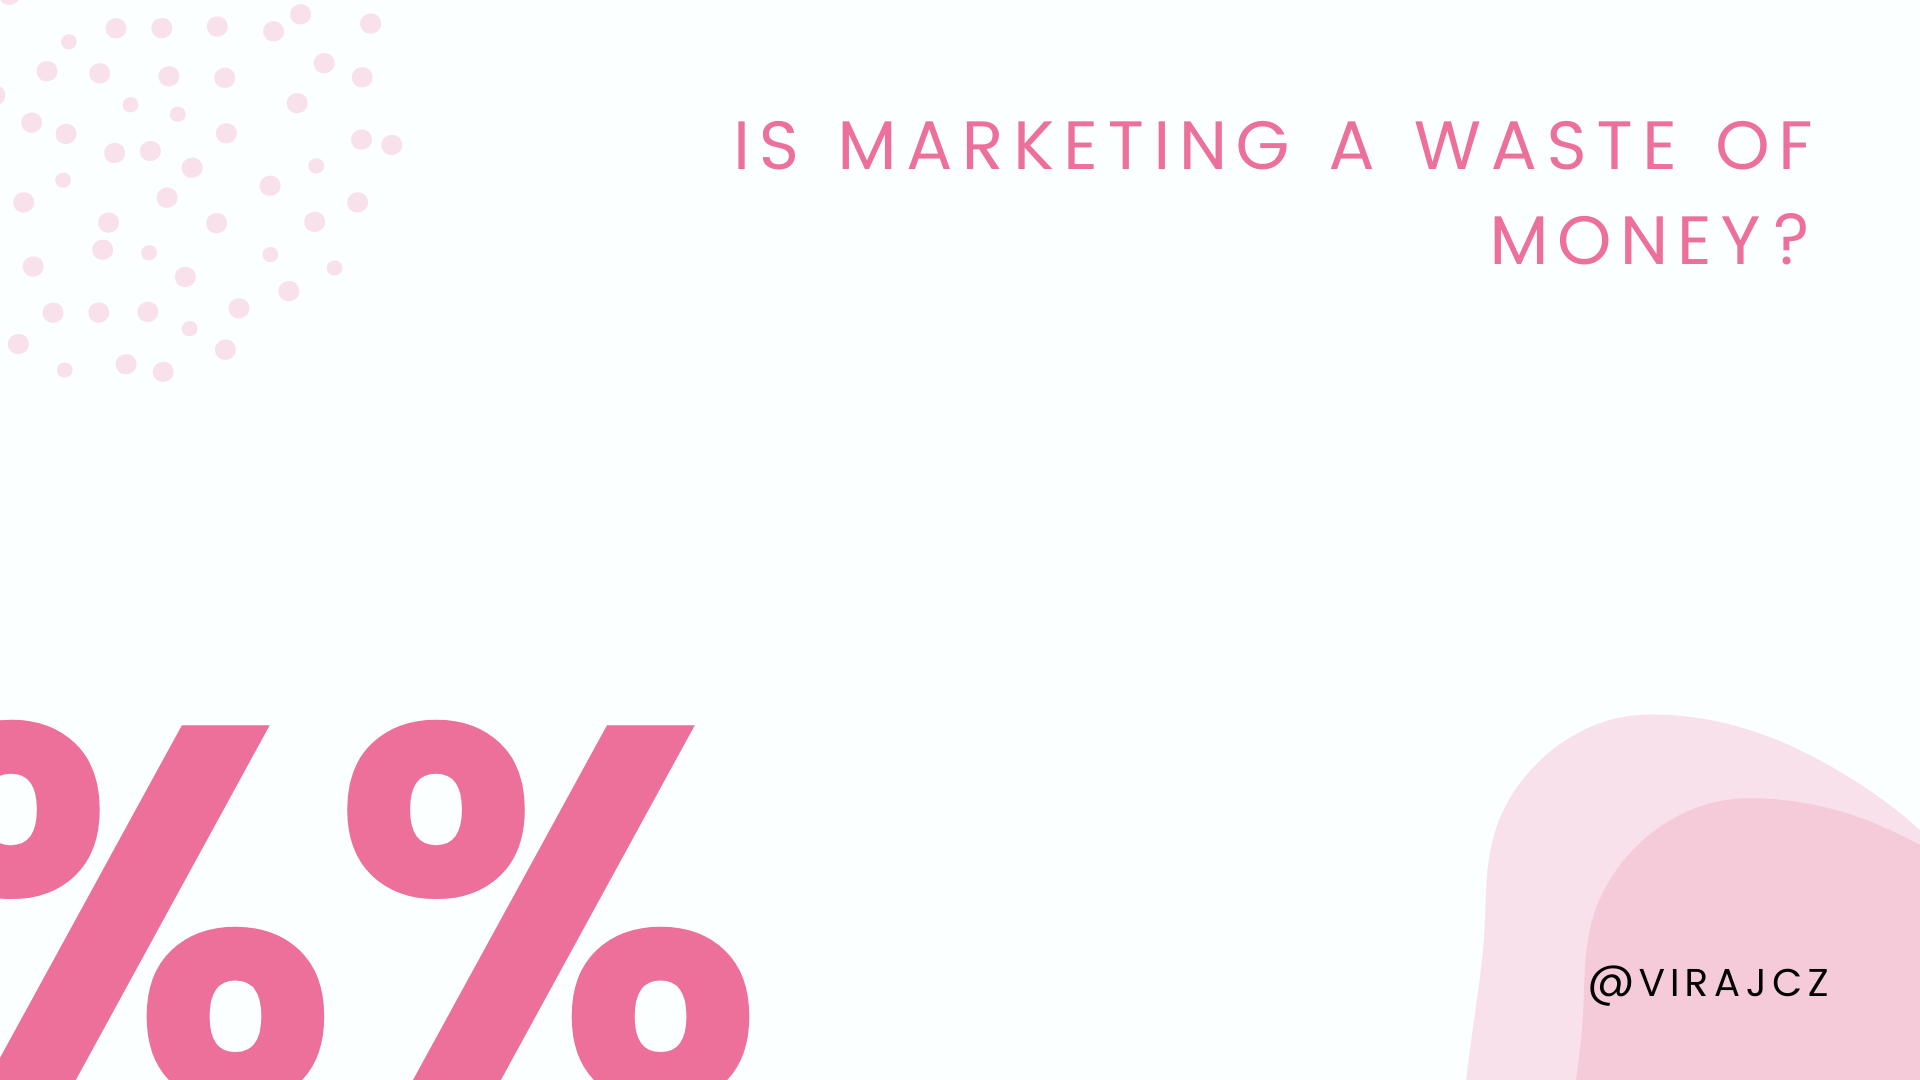 Is marketing a waste of money?